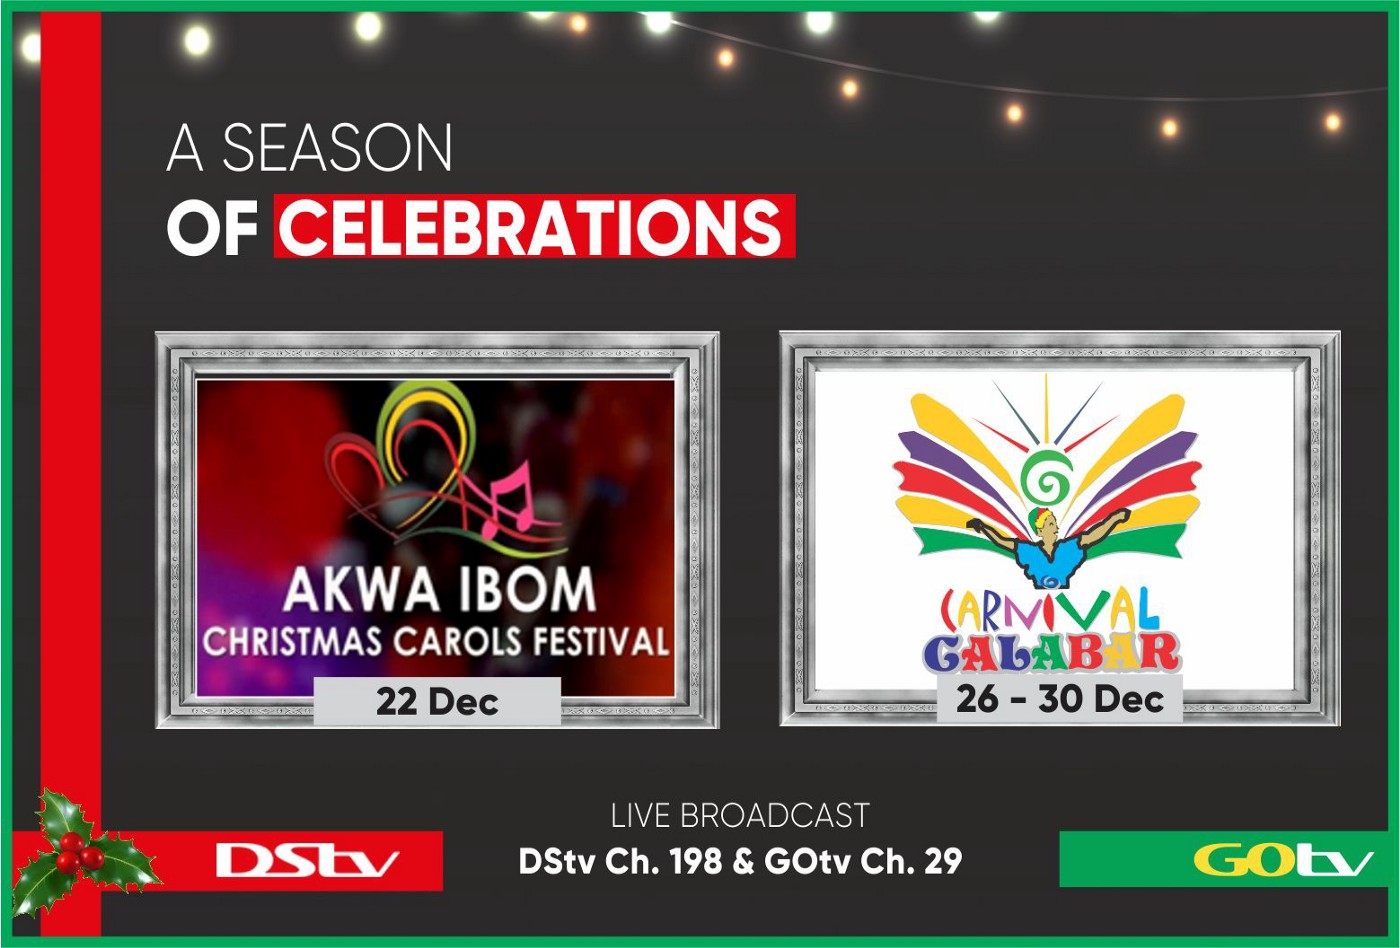 DStv, GOtv To Air Biggest Live Events Of The Festive Season on Pop